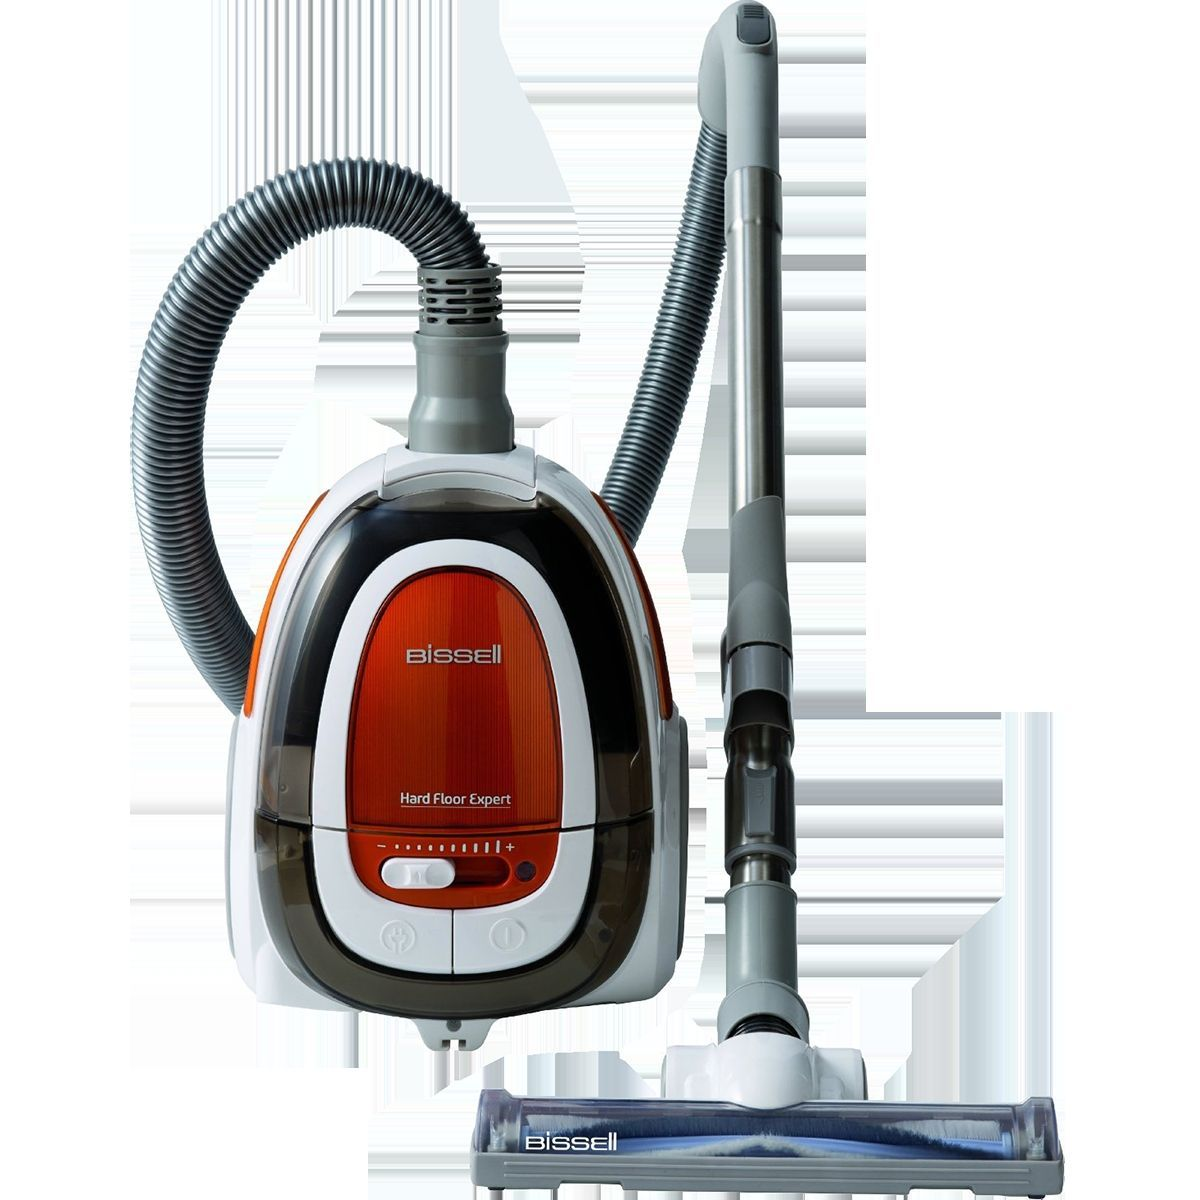 Bissell Hard Floor Expert Canister Vacuum Best canister